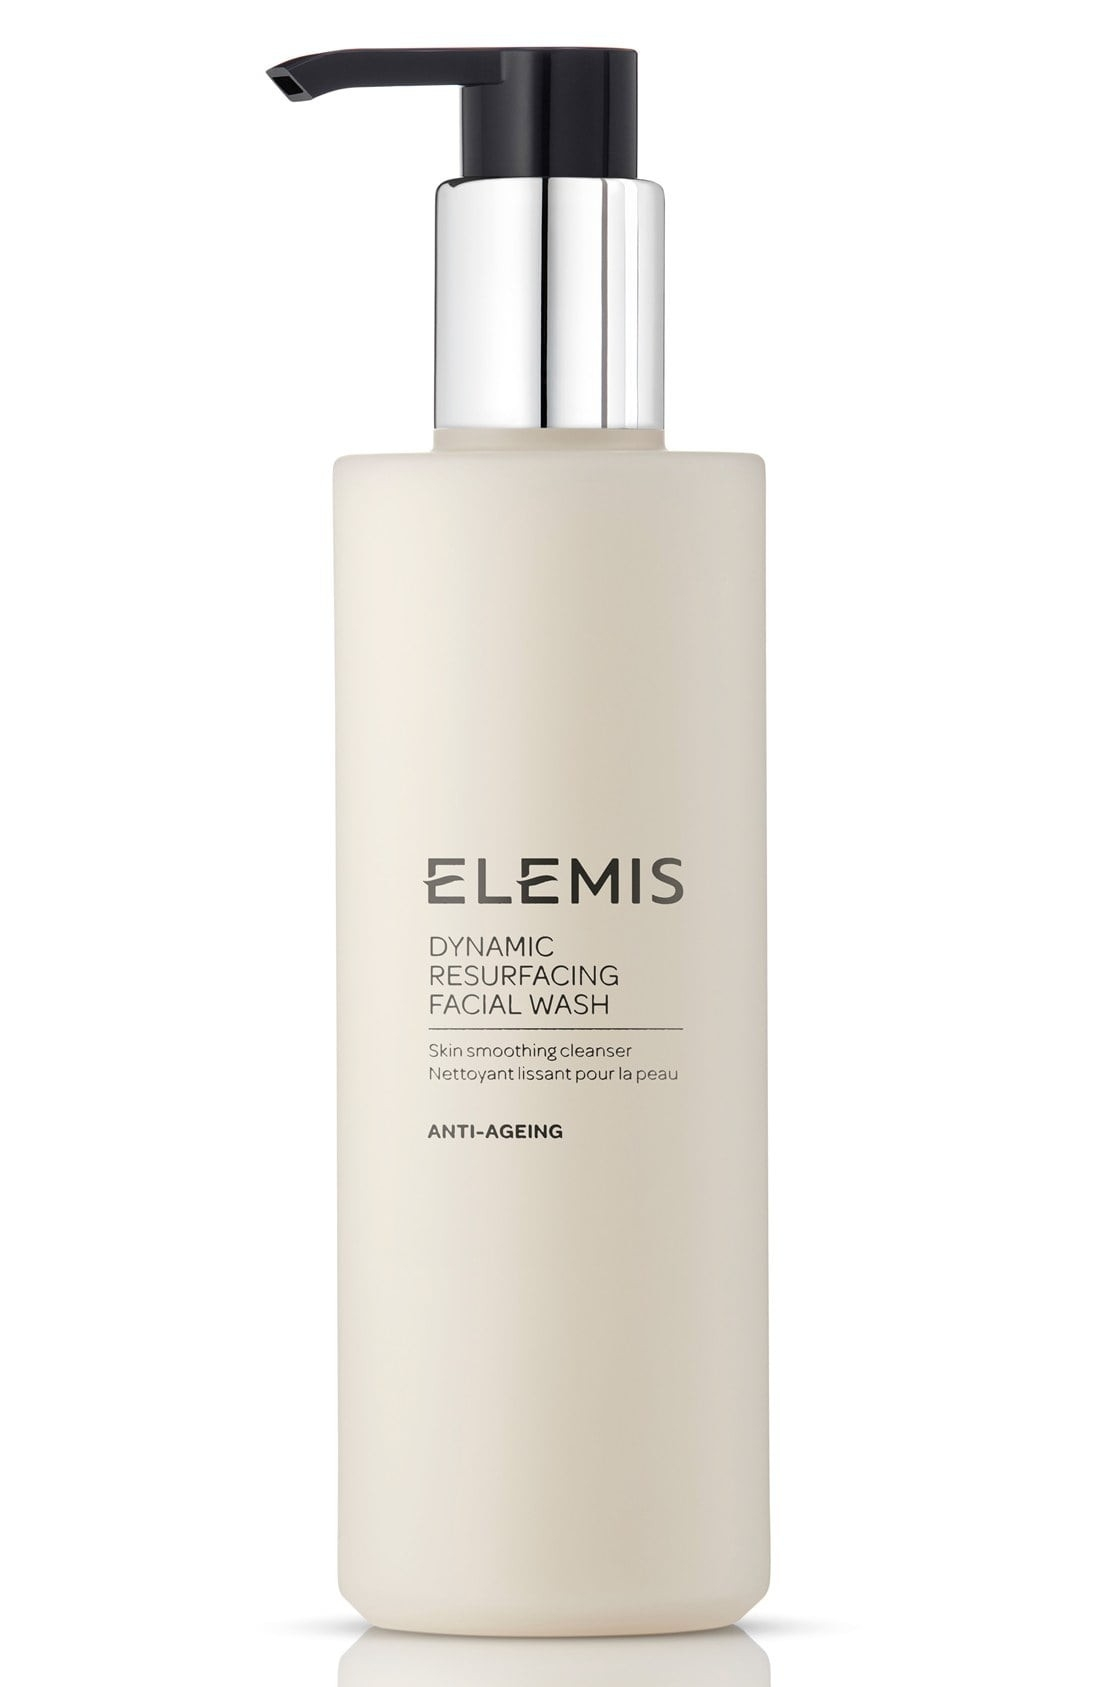 Elemis All Skin Care: Moisturizers, Serums, Cleansers & More  Elemis Advent Calander 2020